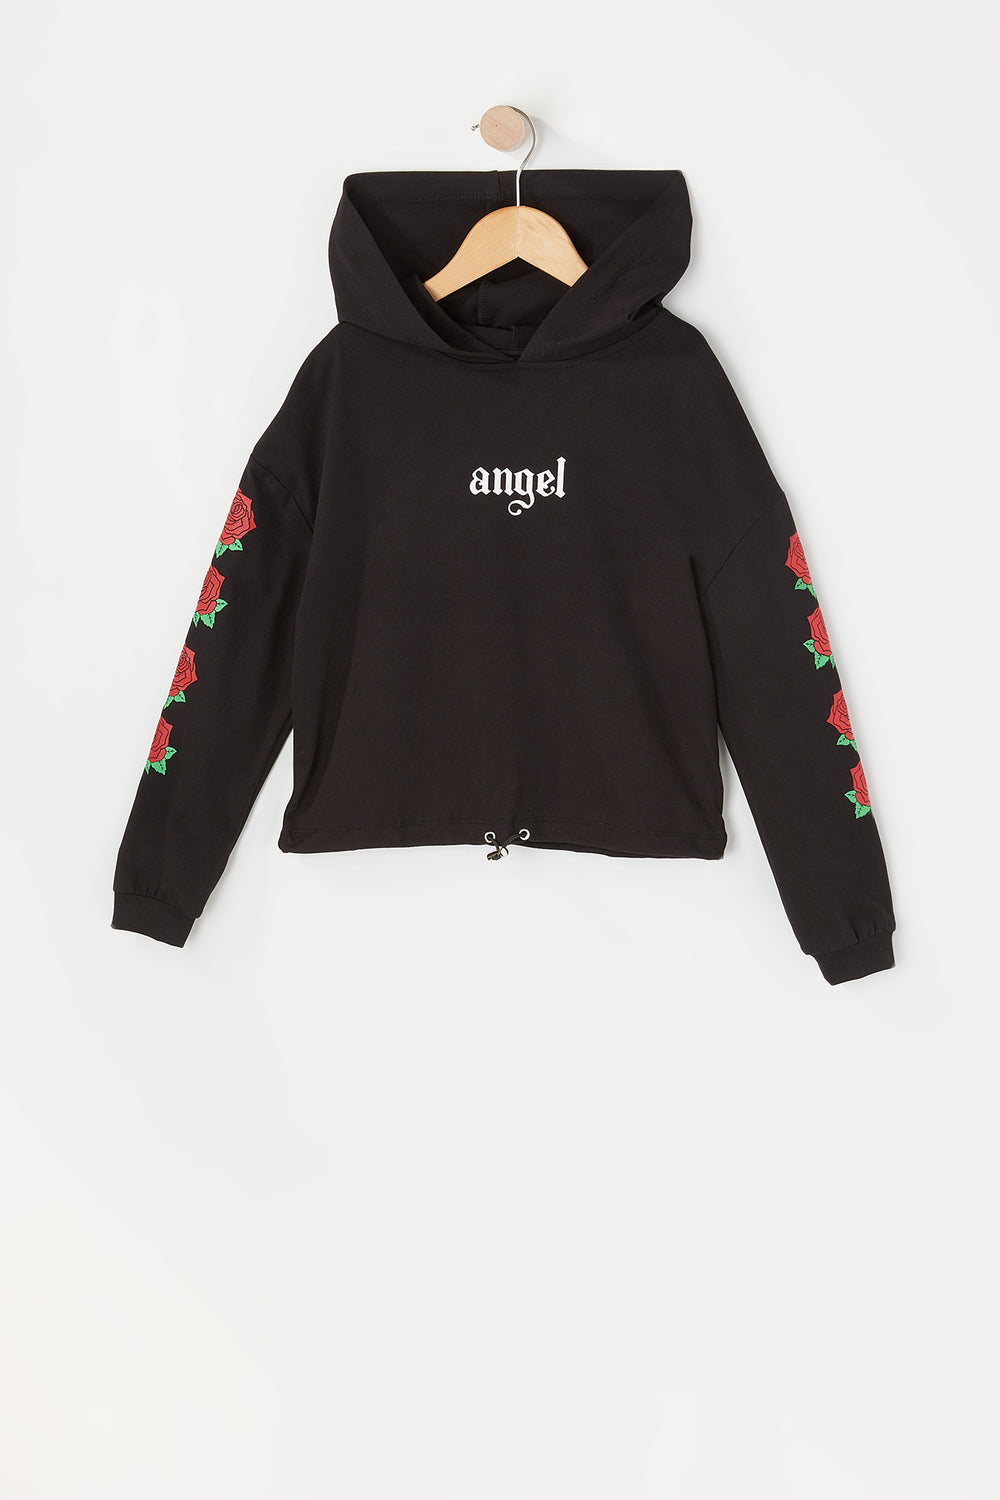 Girls Soft Graphic Cinched Hem Cropped Hoodie Black